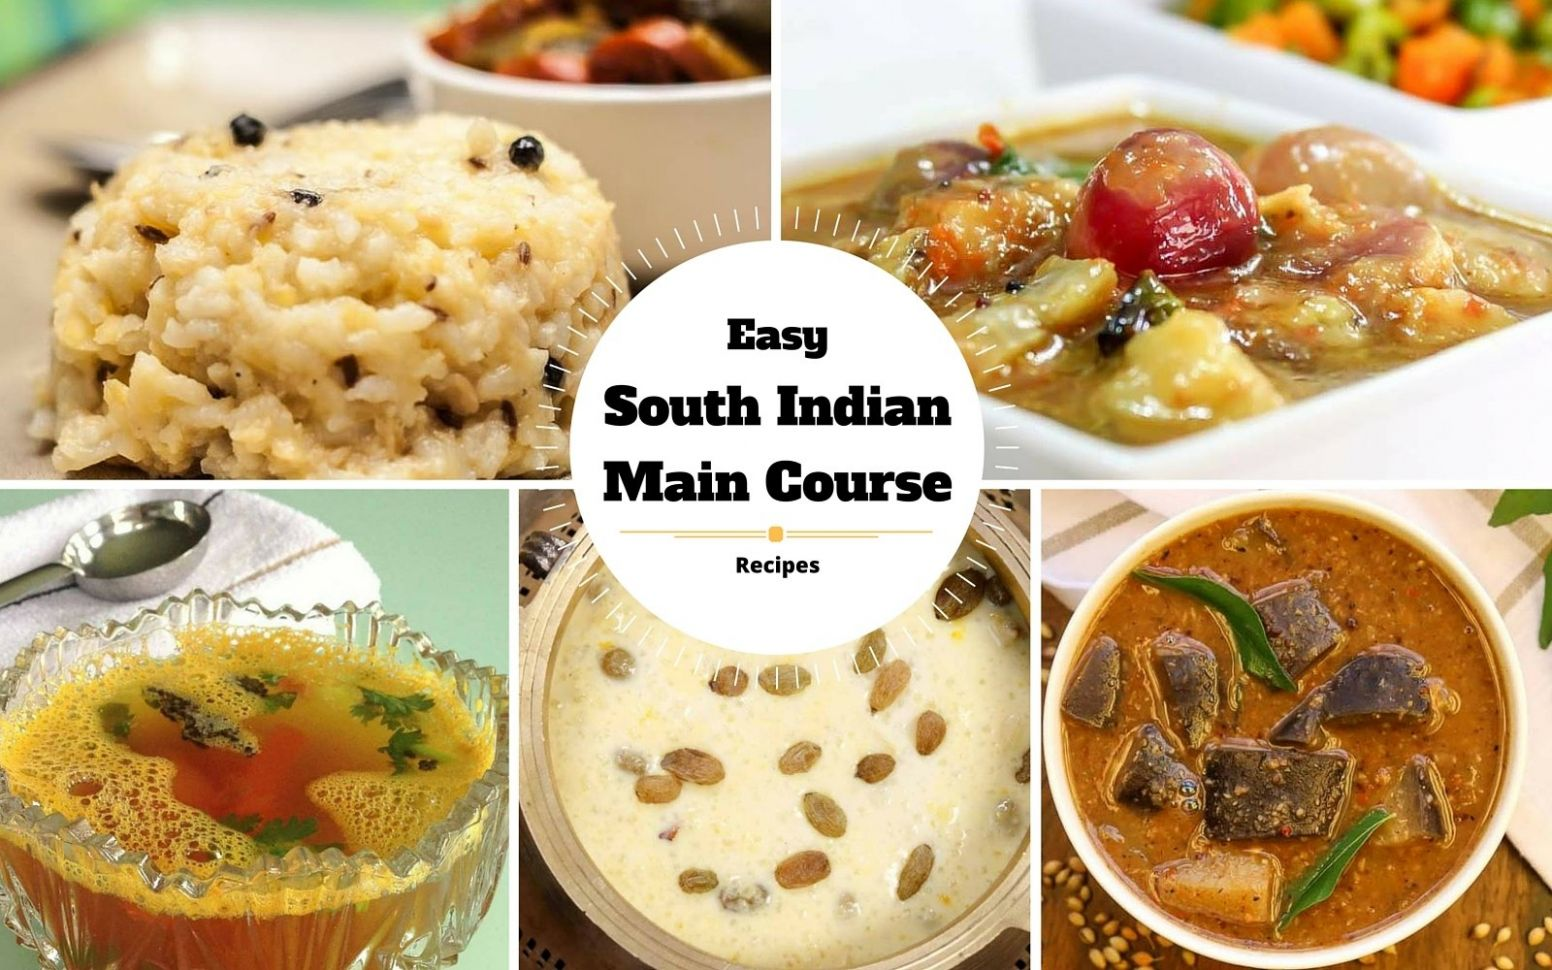 Easy To Make South Indian Main Course Recipes for Beginners by ..